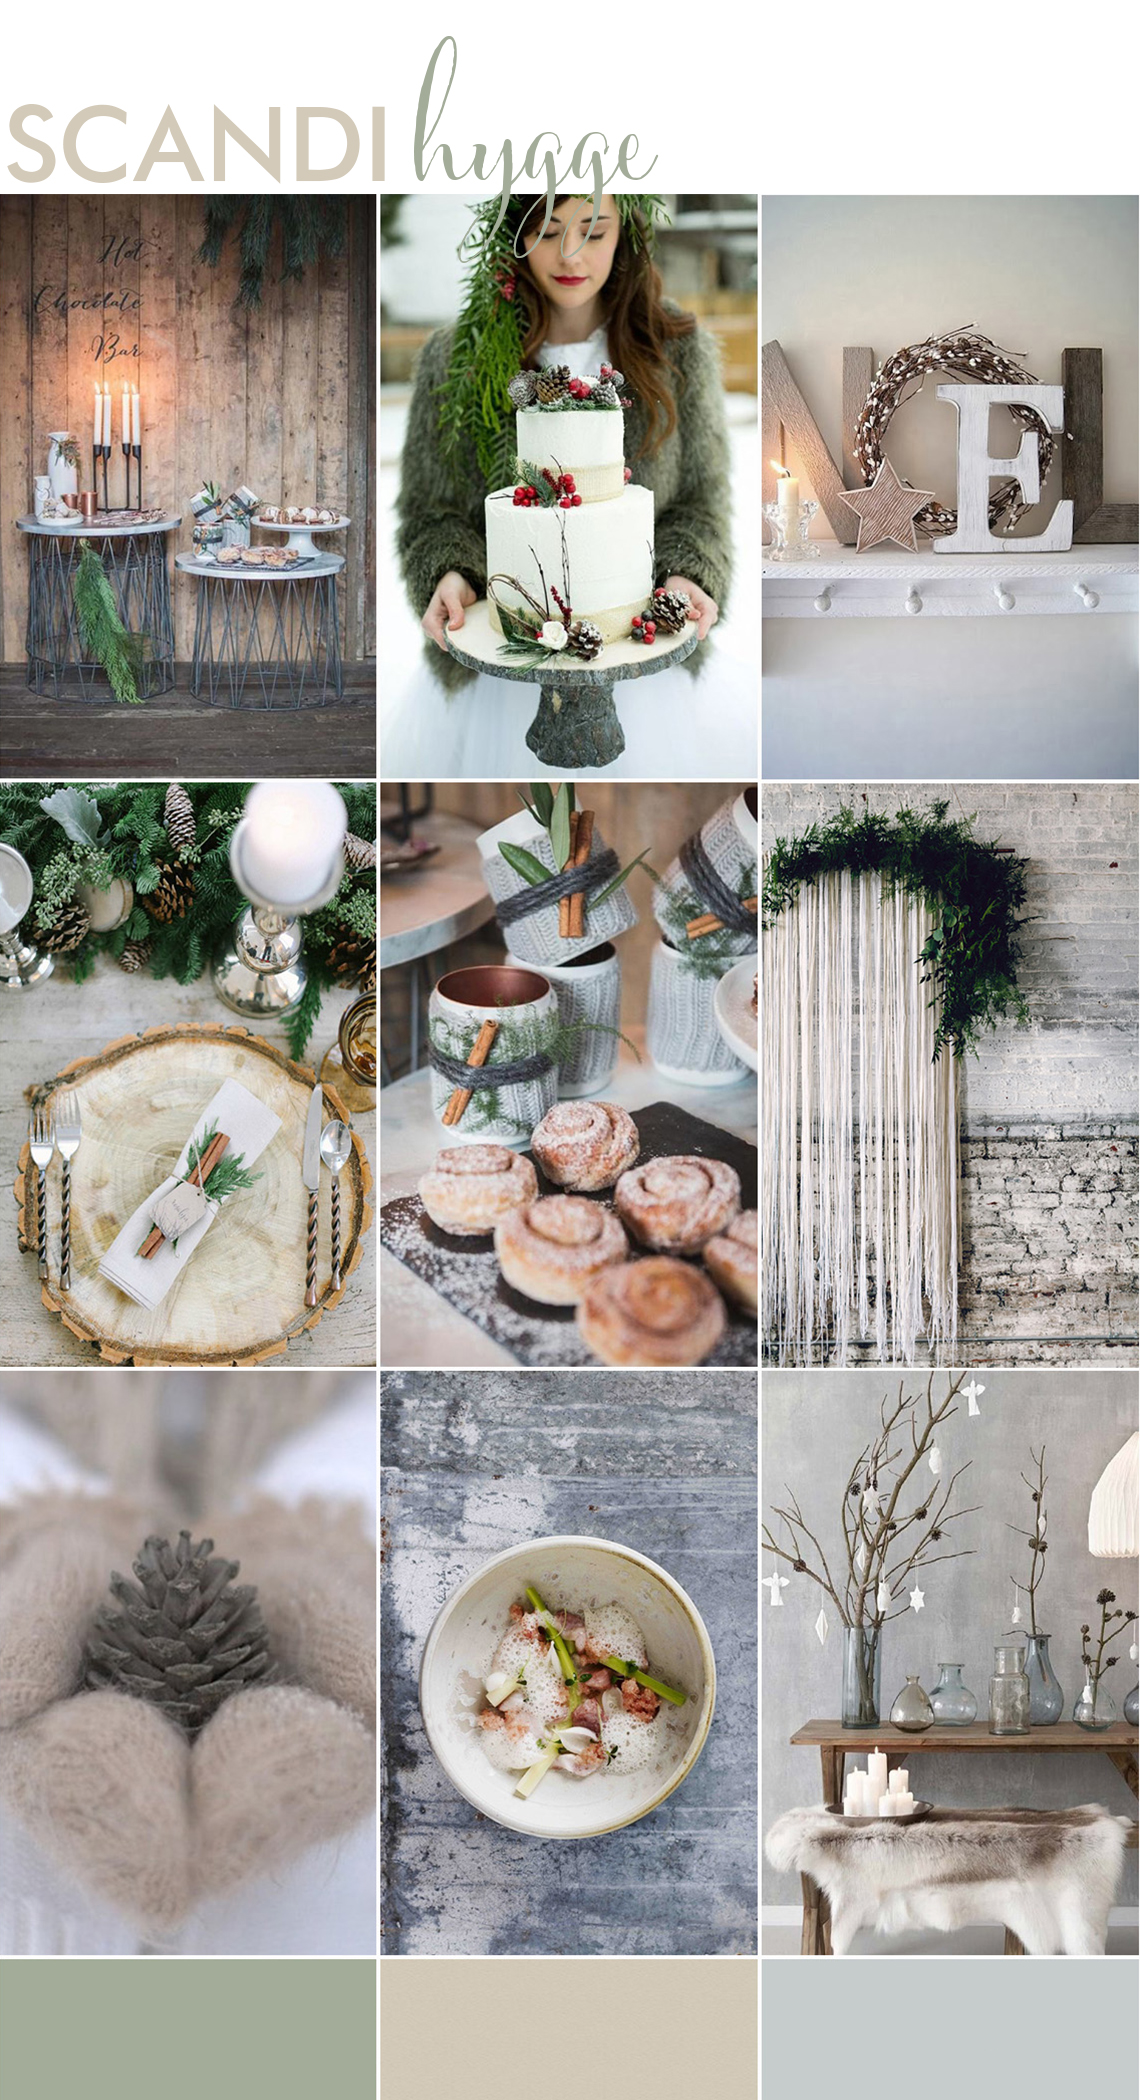 bloved-wedding-blog-scandi-hygge-moodboard-goose-and-berry